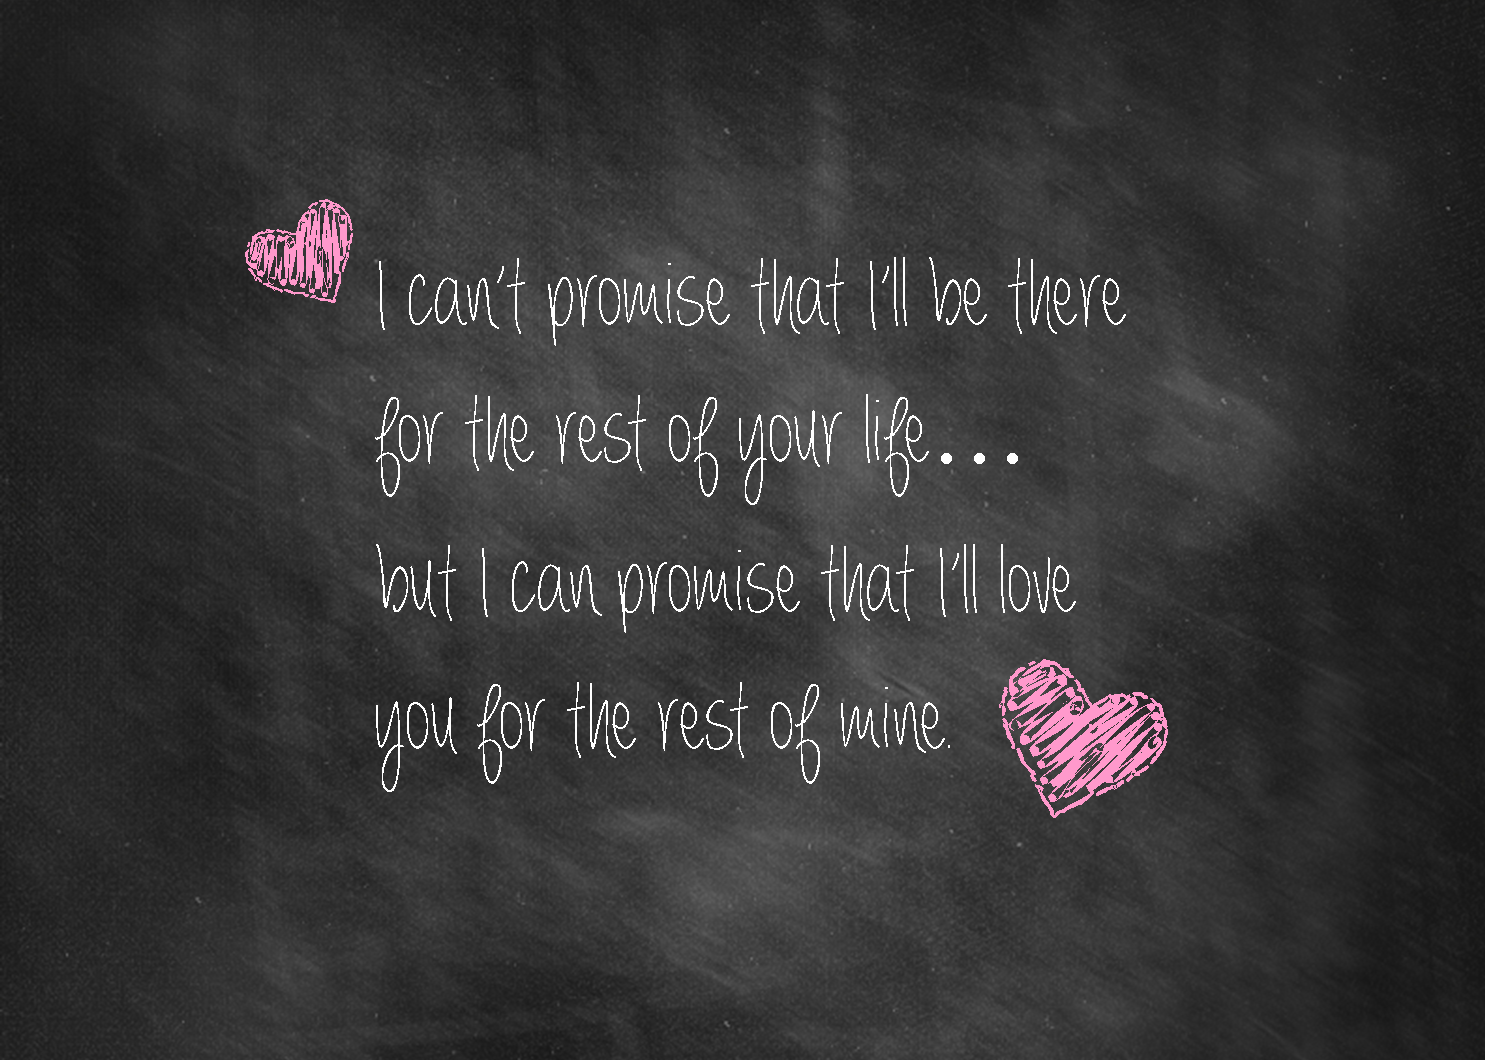 Keeping Promise Quotes & Sayings - Freshmorningquotes